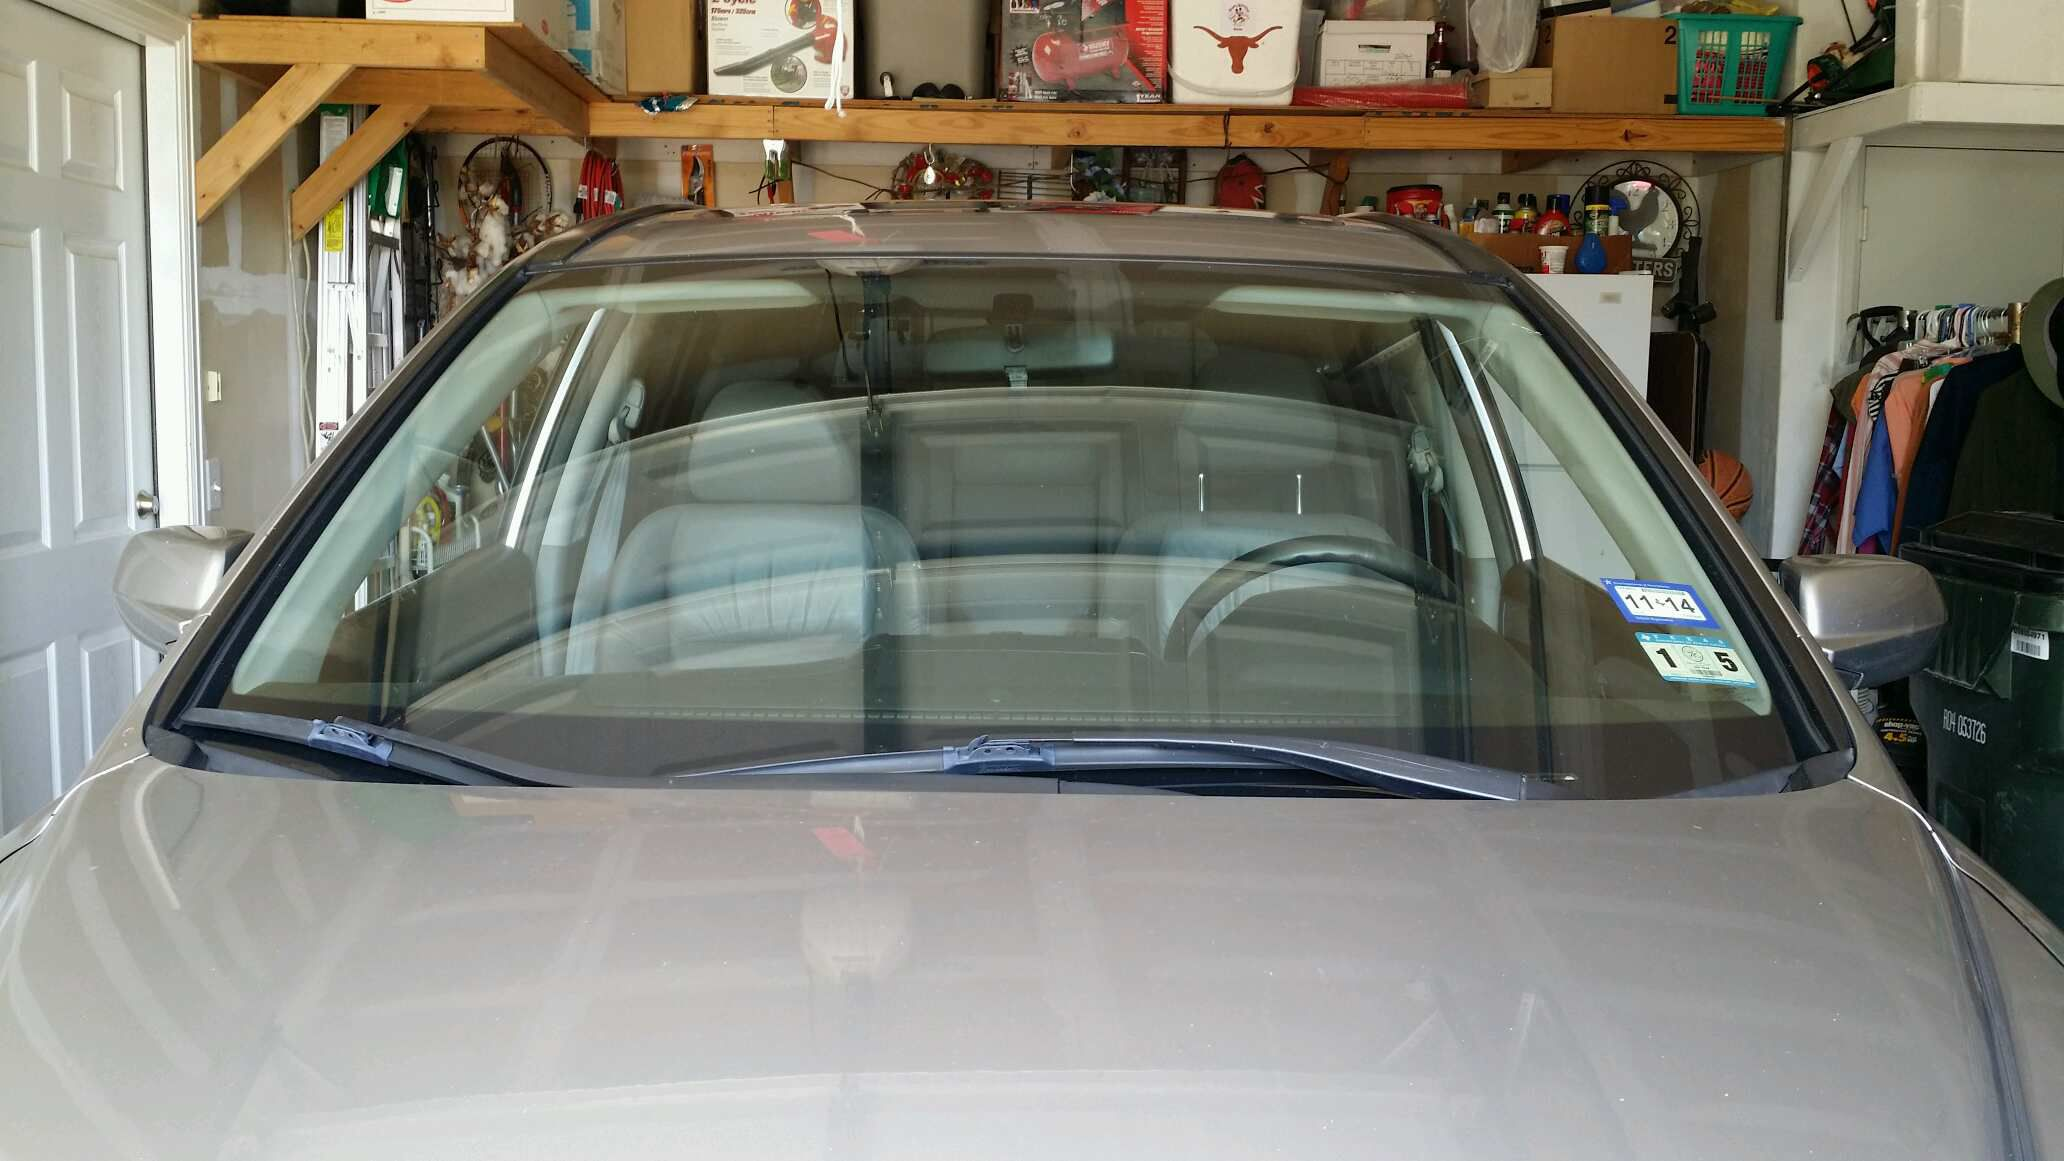 2007 honda cr v windshield for Honda civic windshield replacement cost